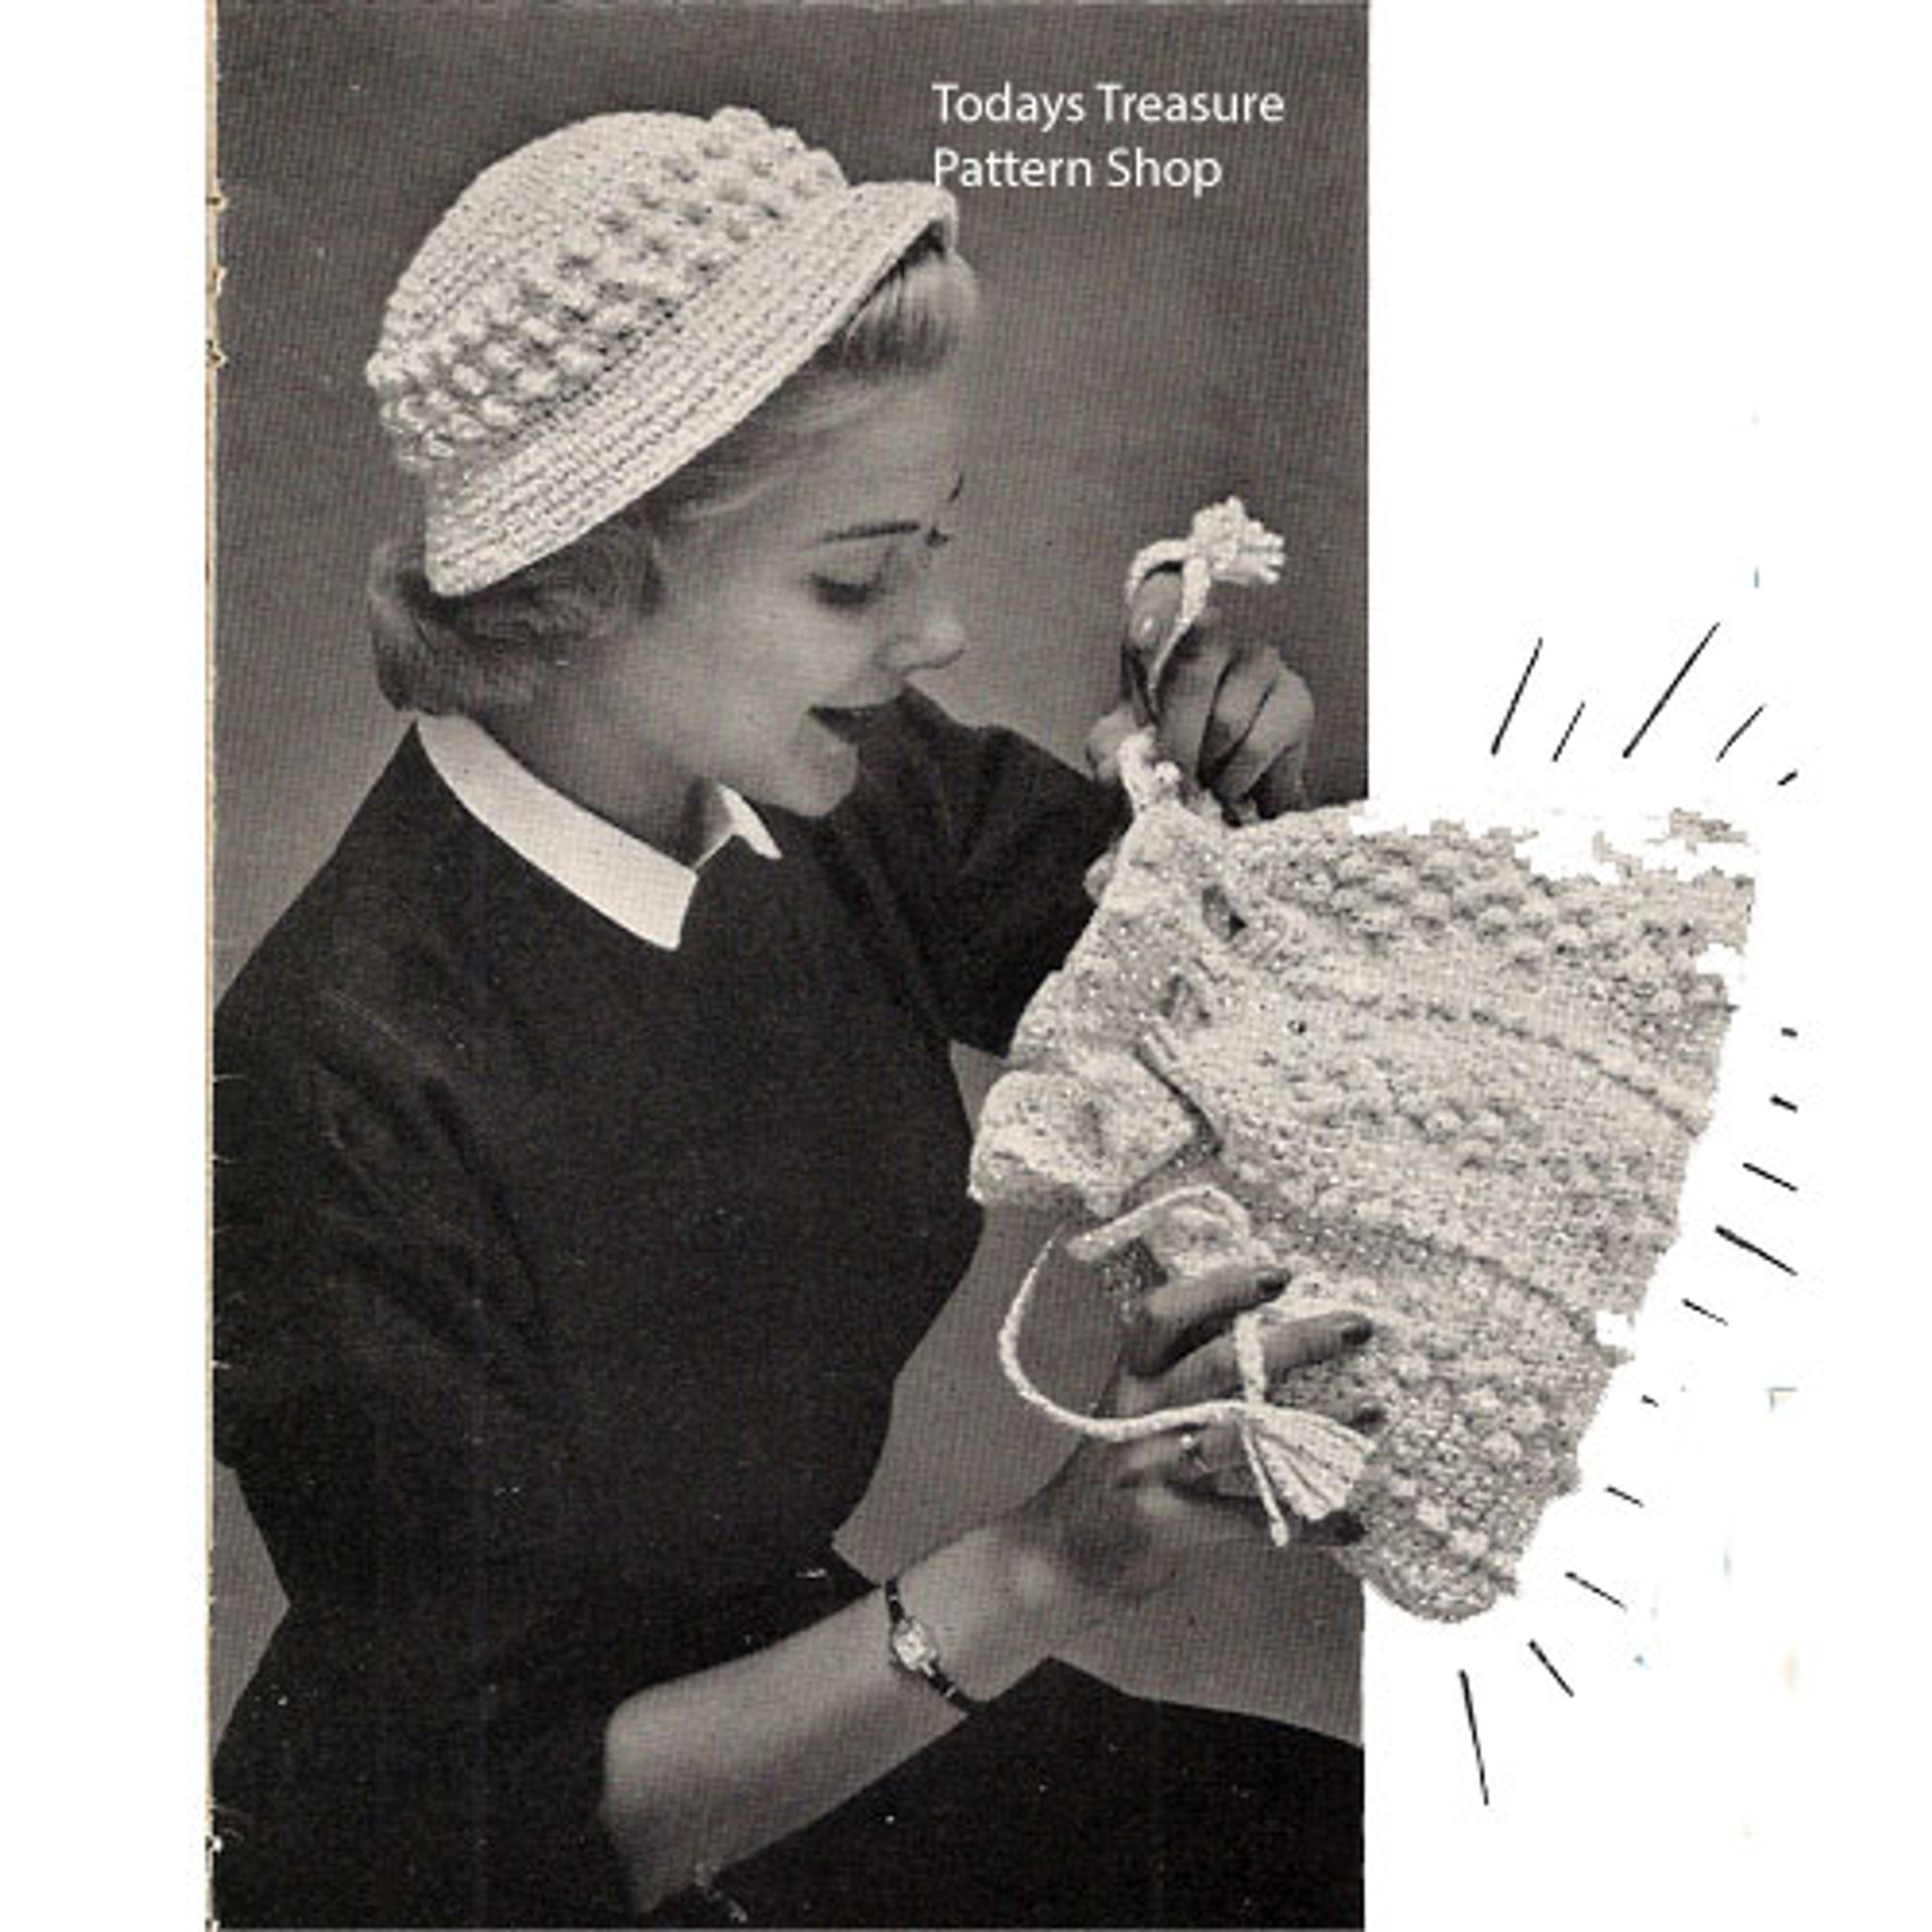 Vintage Drawstring Crochet Bag Pattern in Popcorn Stitch